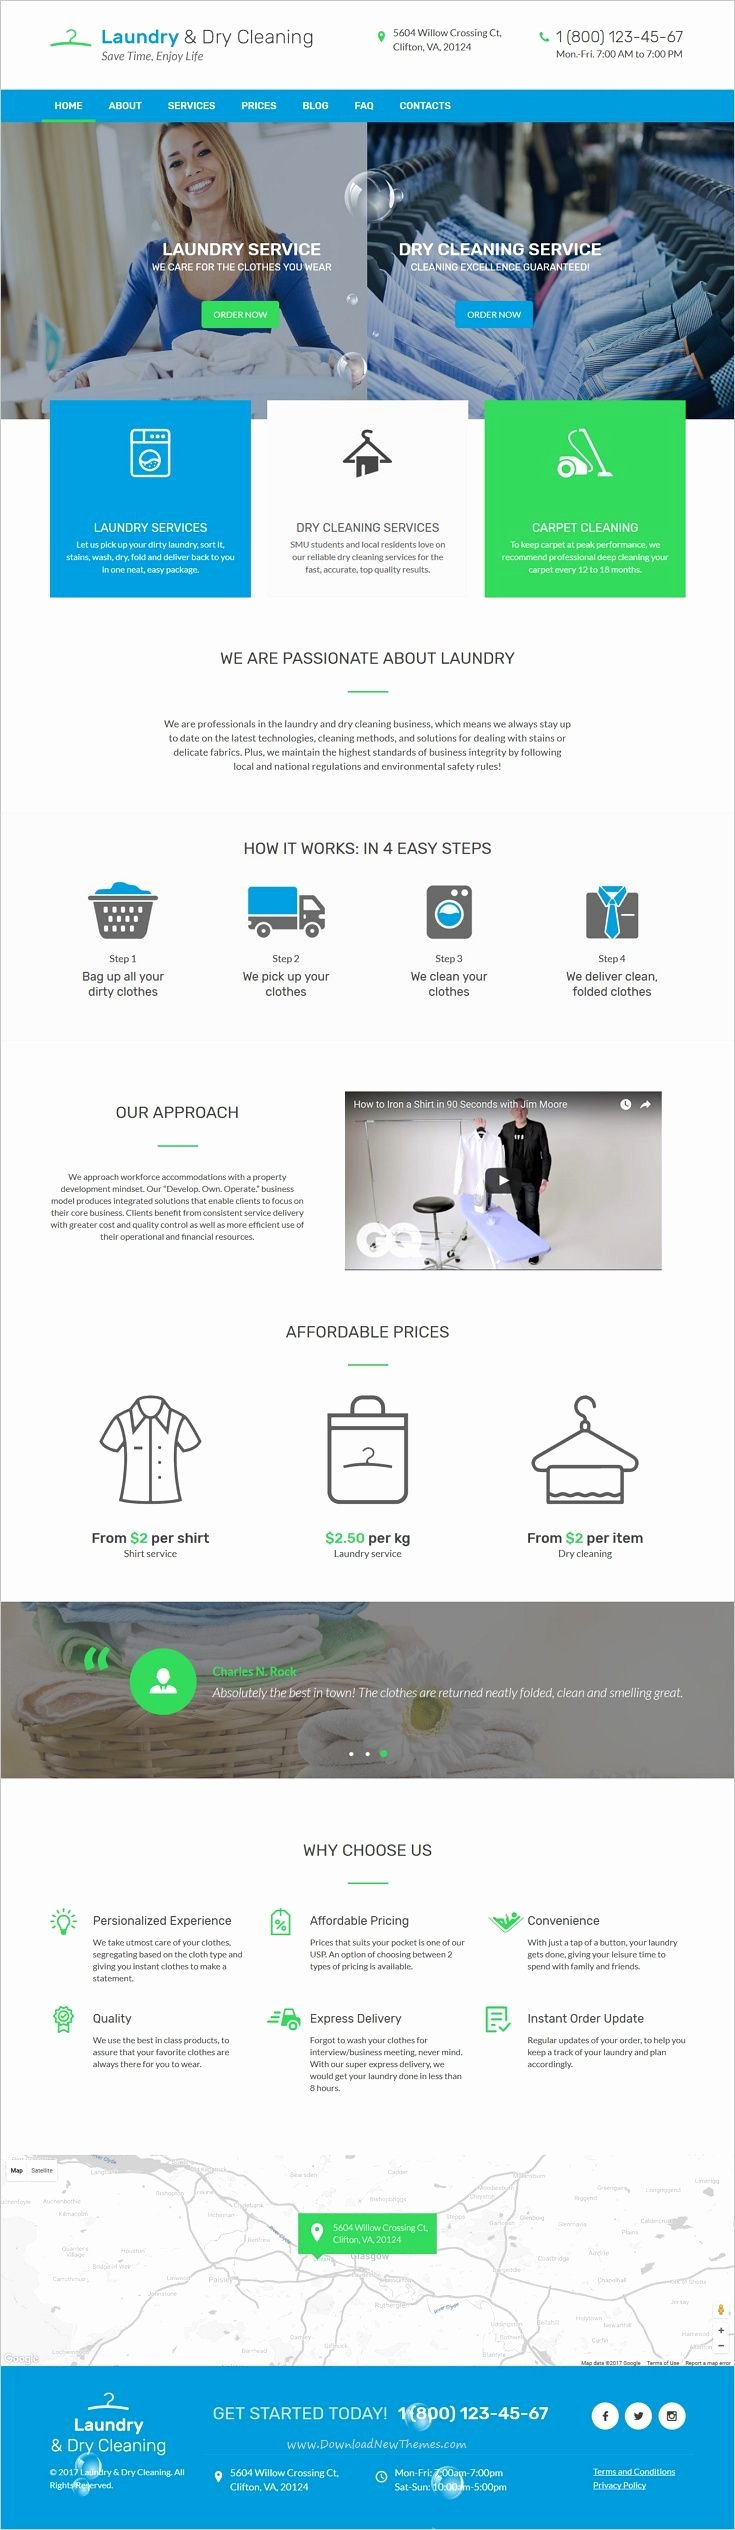 Cleaning Services Website Template New Best 25 Dry Cleaning Services Ideas On Pinterest